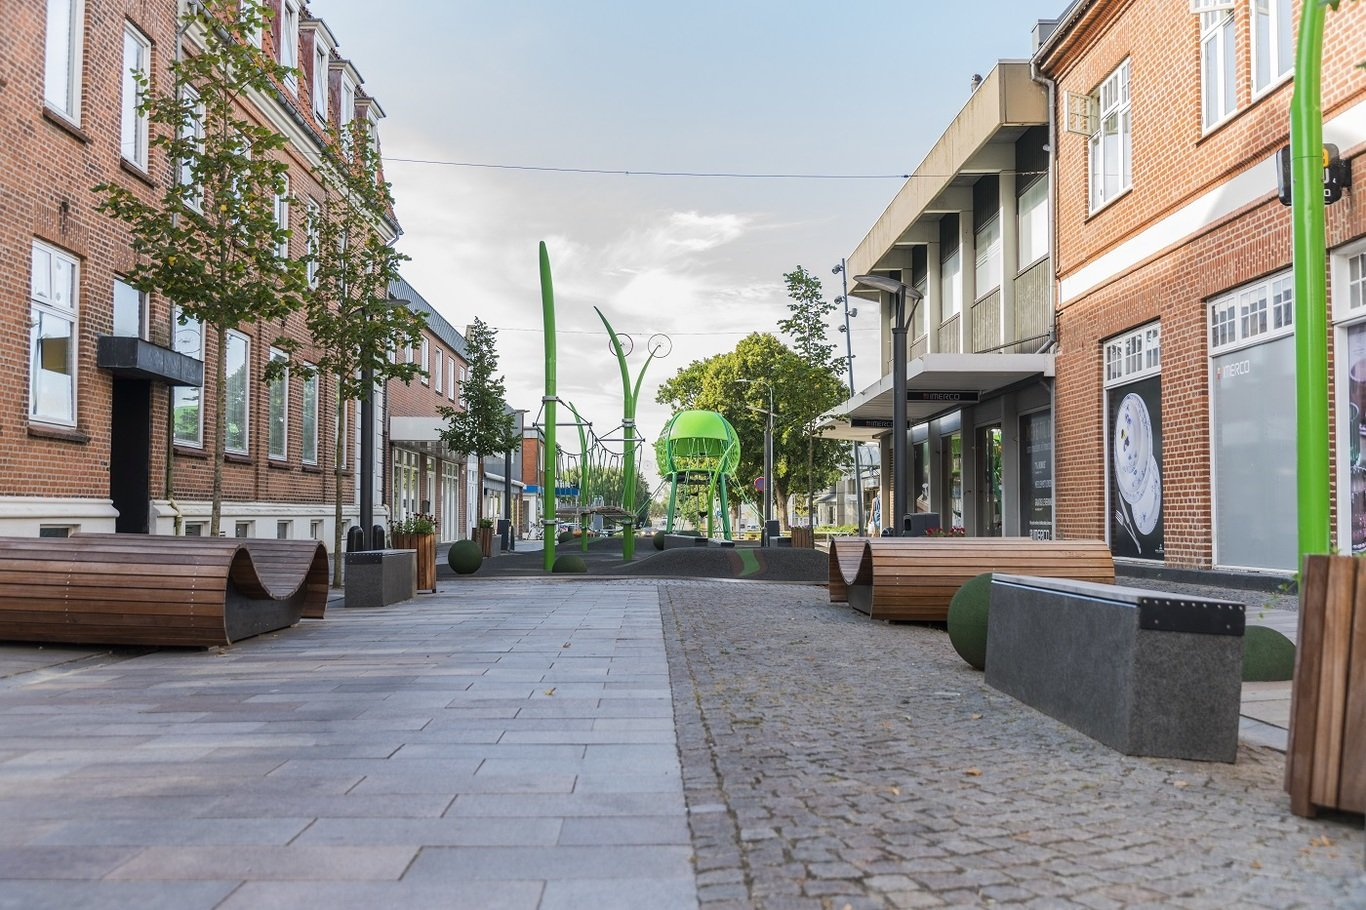 New city centre in Grindsted